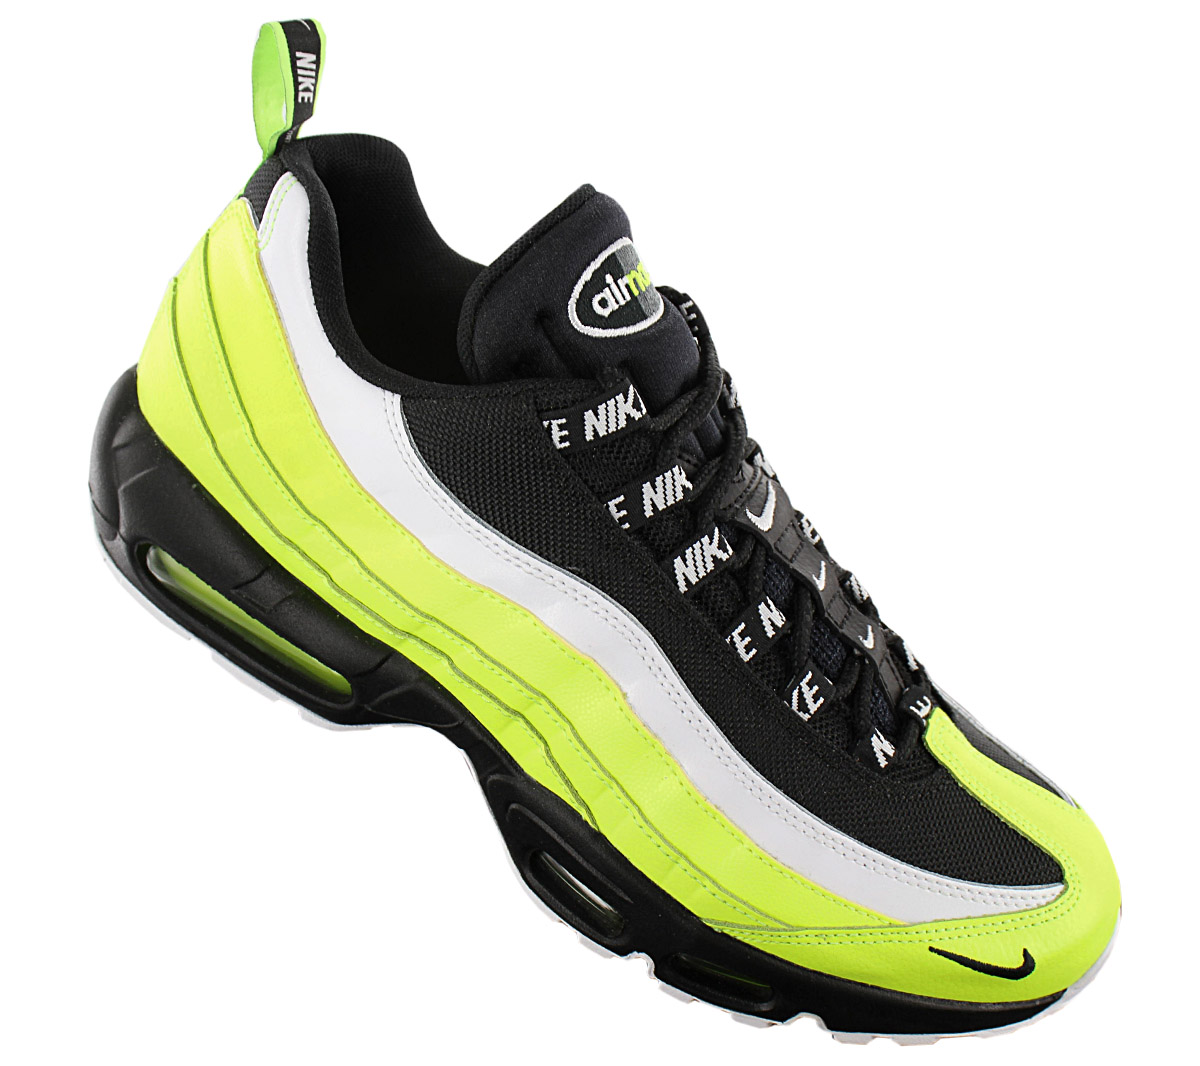 Details about Nike Air Max 95 Premium Men's Sneaker 538416 701 Black Volt Shoes